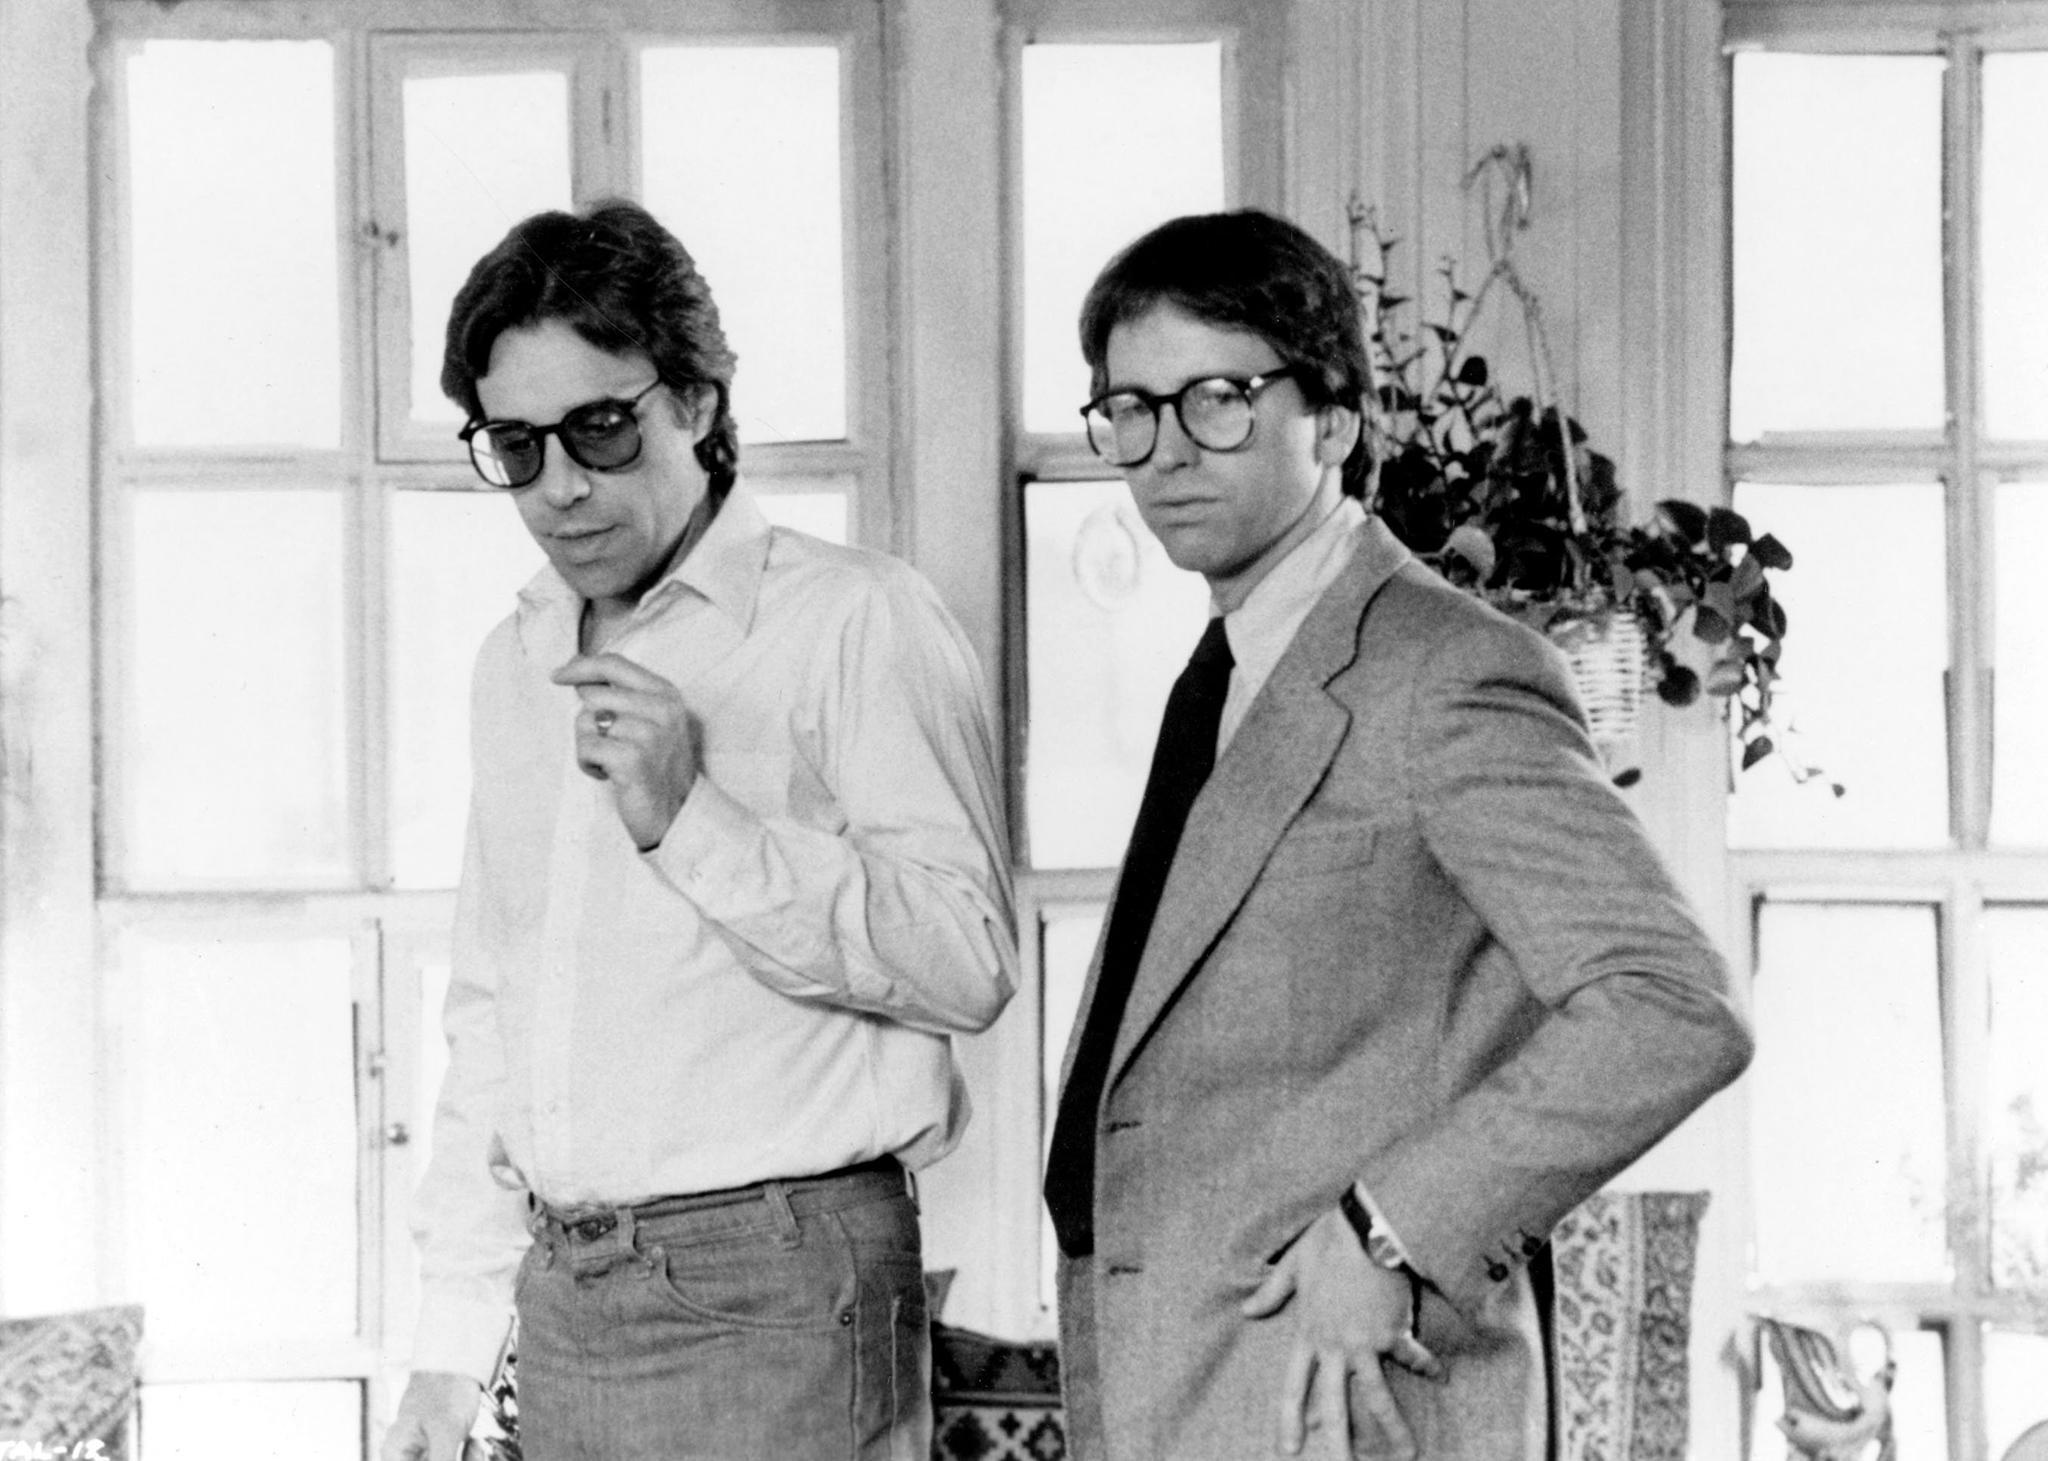 John Ritter and Peter Bogdanovich on the set of They All Laughed